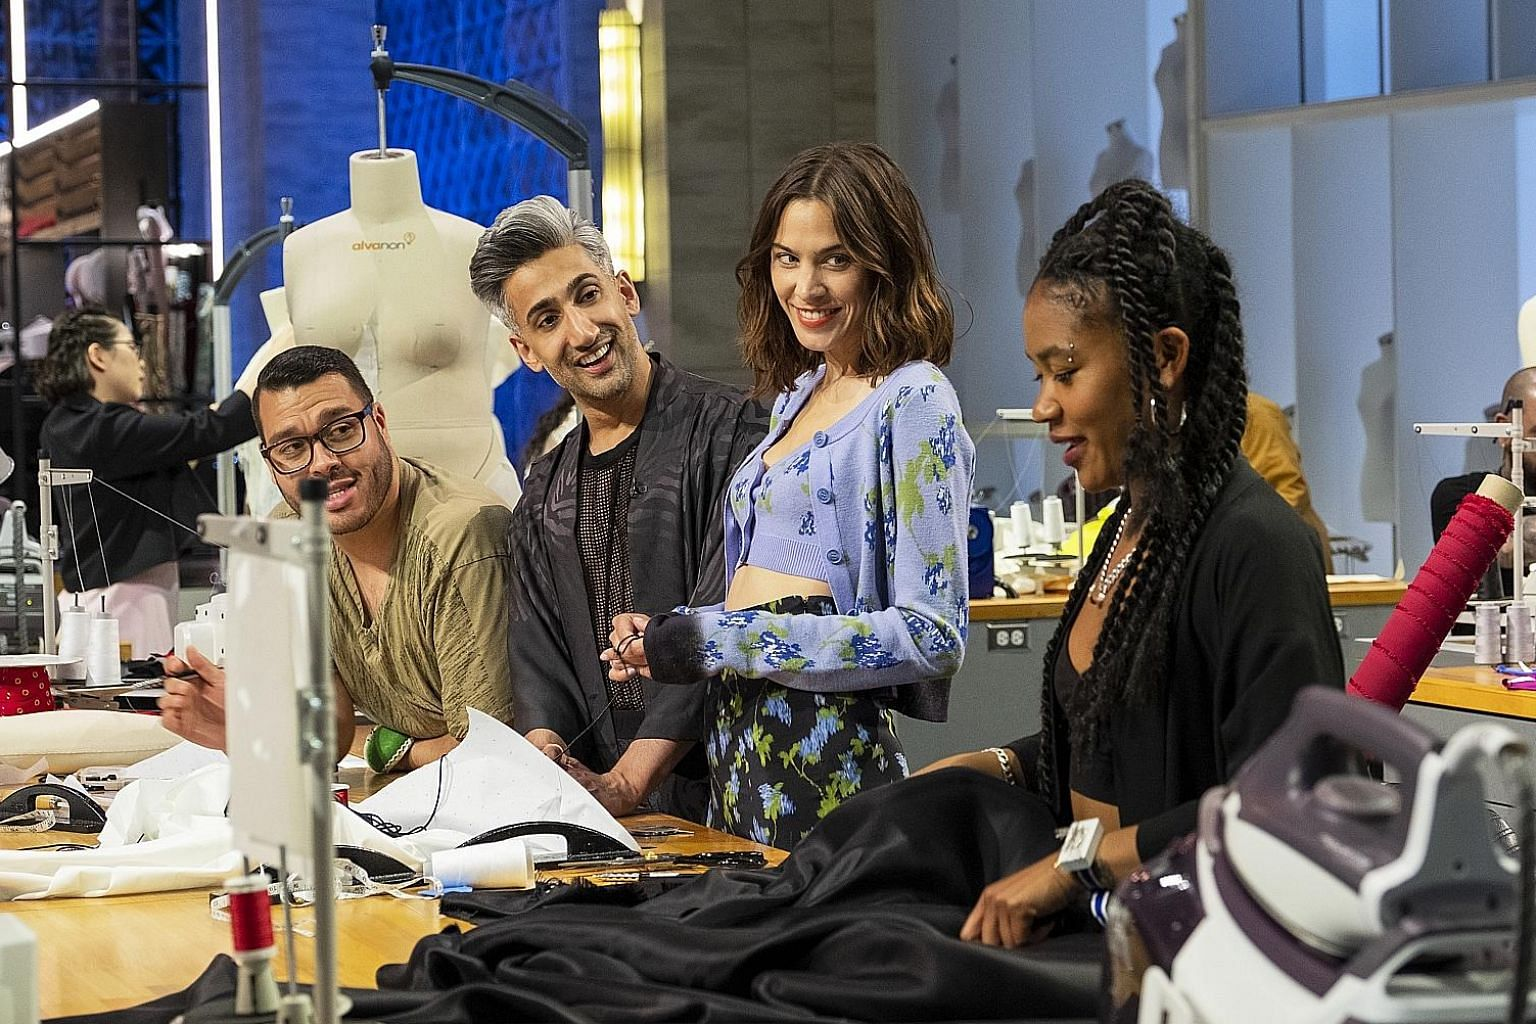 Next In Fashion hosts Tan France (second from left) and fashion personality Alexa Chung (third from left) with contestants Adolfo Sanchez (far left) and Claire Davis (right).